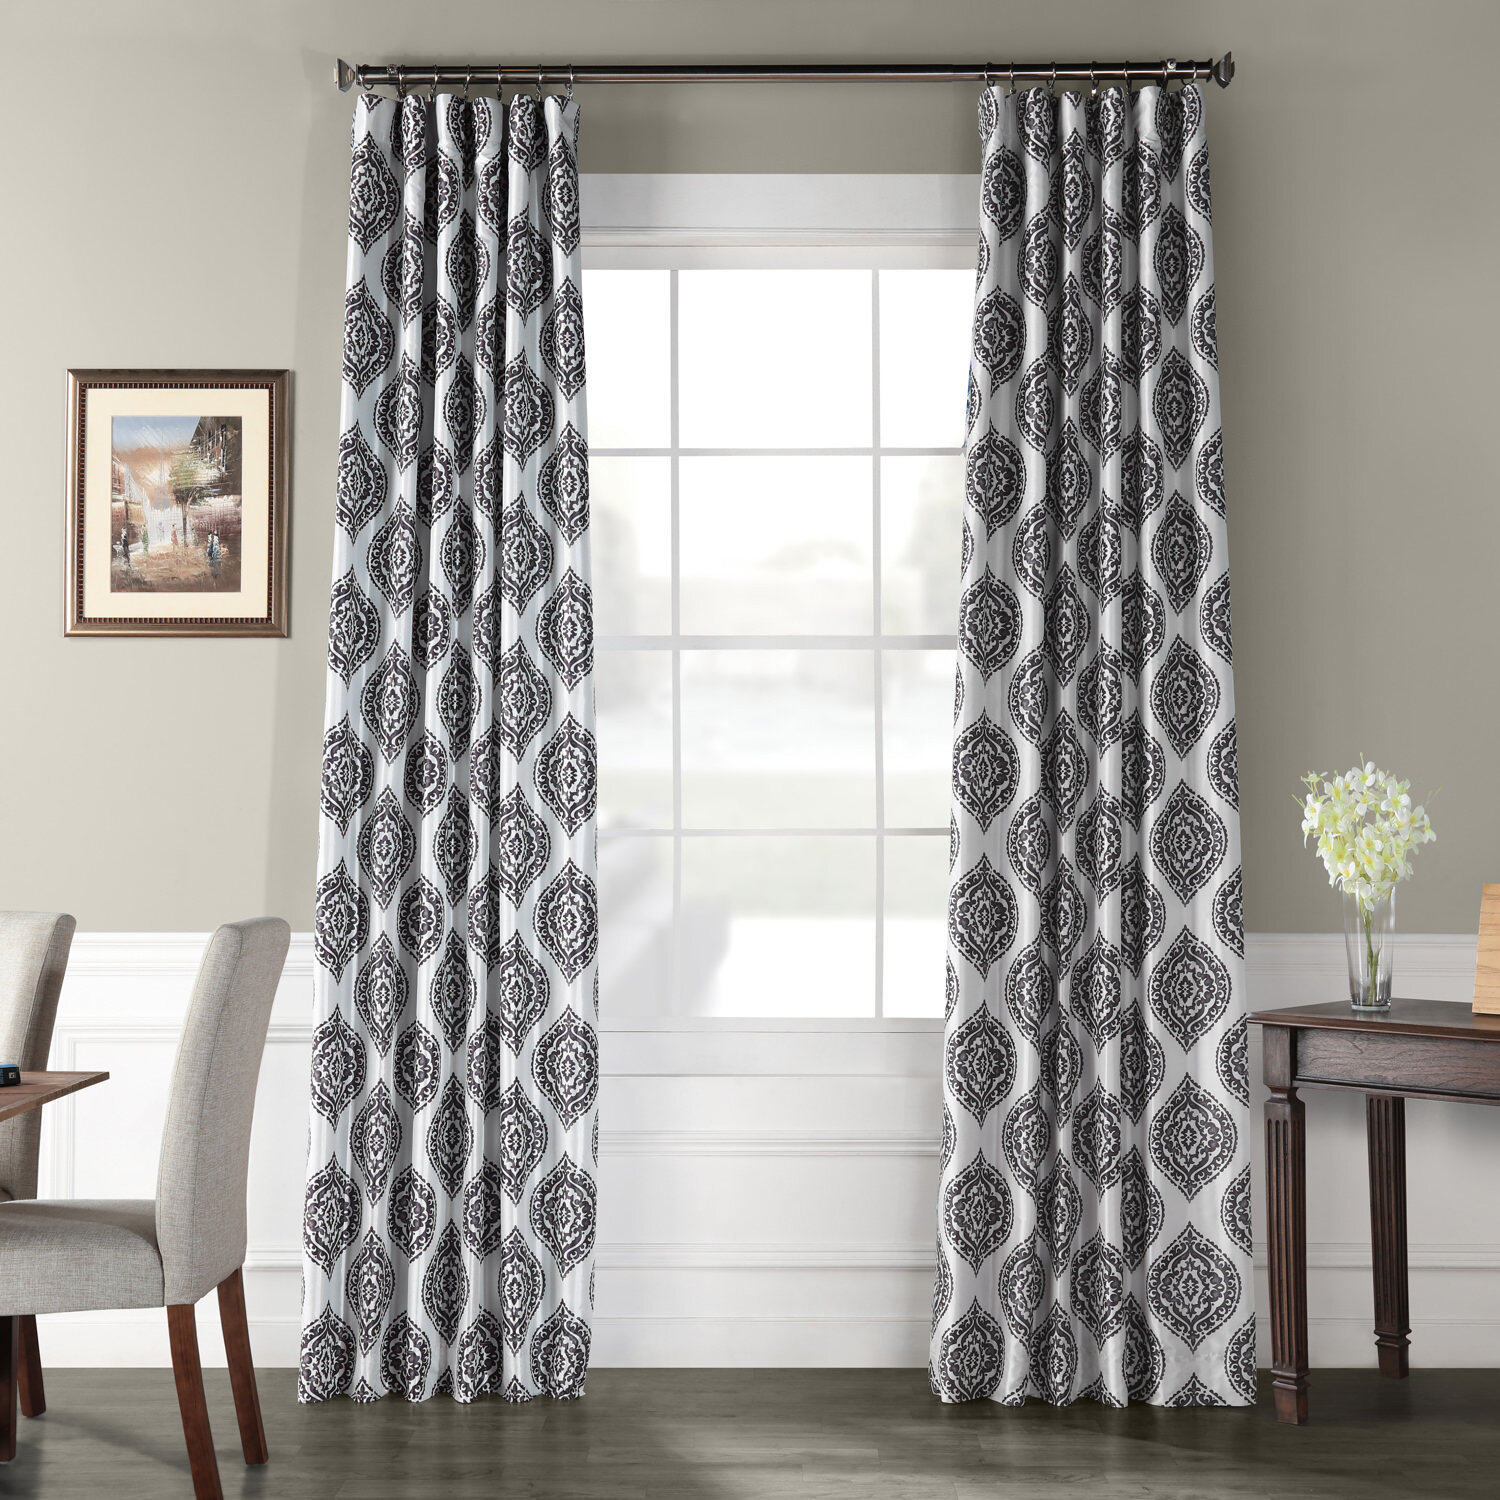 Darby Home Co Markiewicz Printed Faux Silk Taffeta Blackout With Regard To Overseas Faux Silk Blackout Curtain Panel Pairs (View 15 of 20)